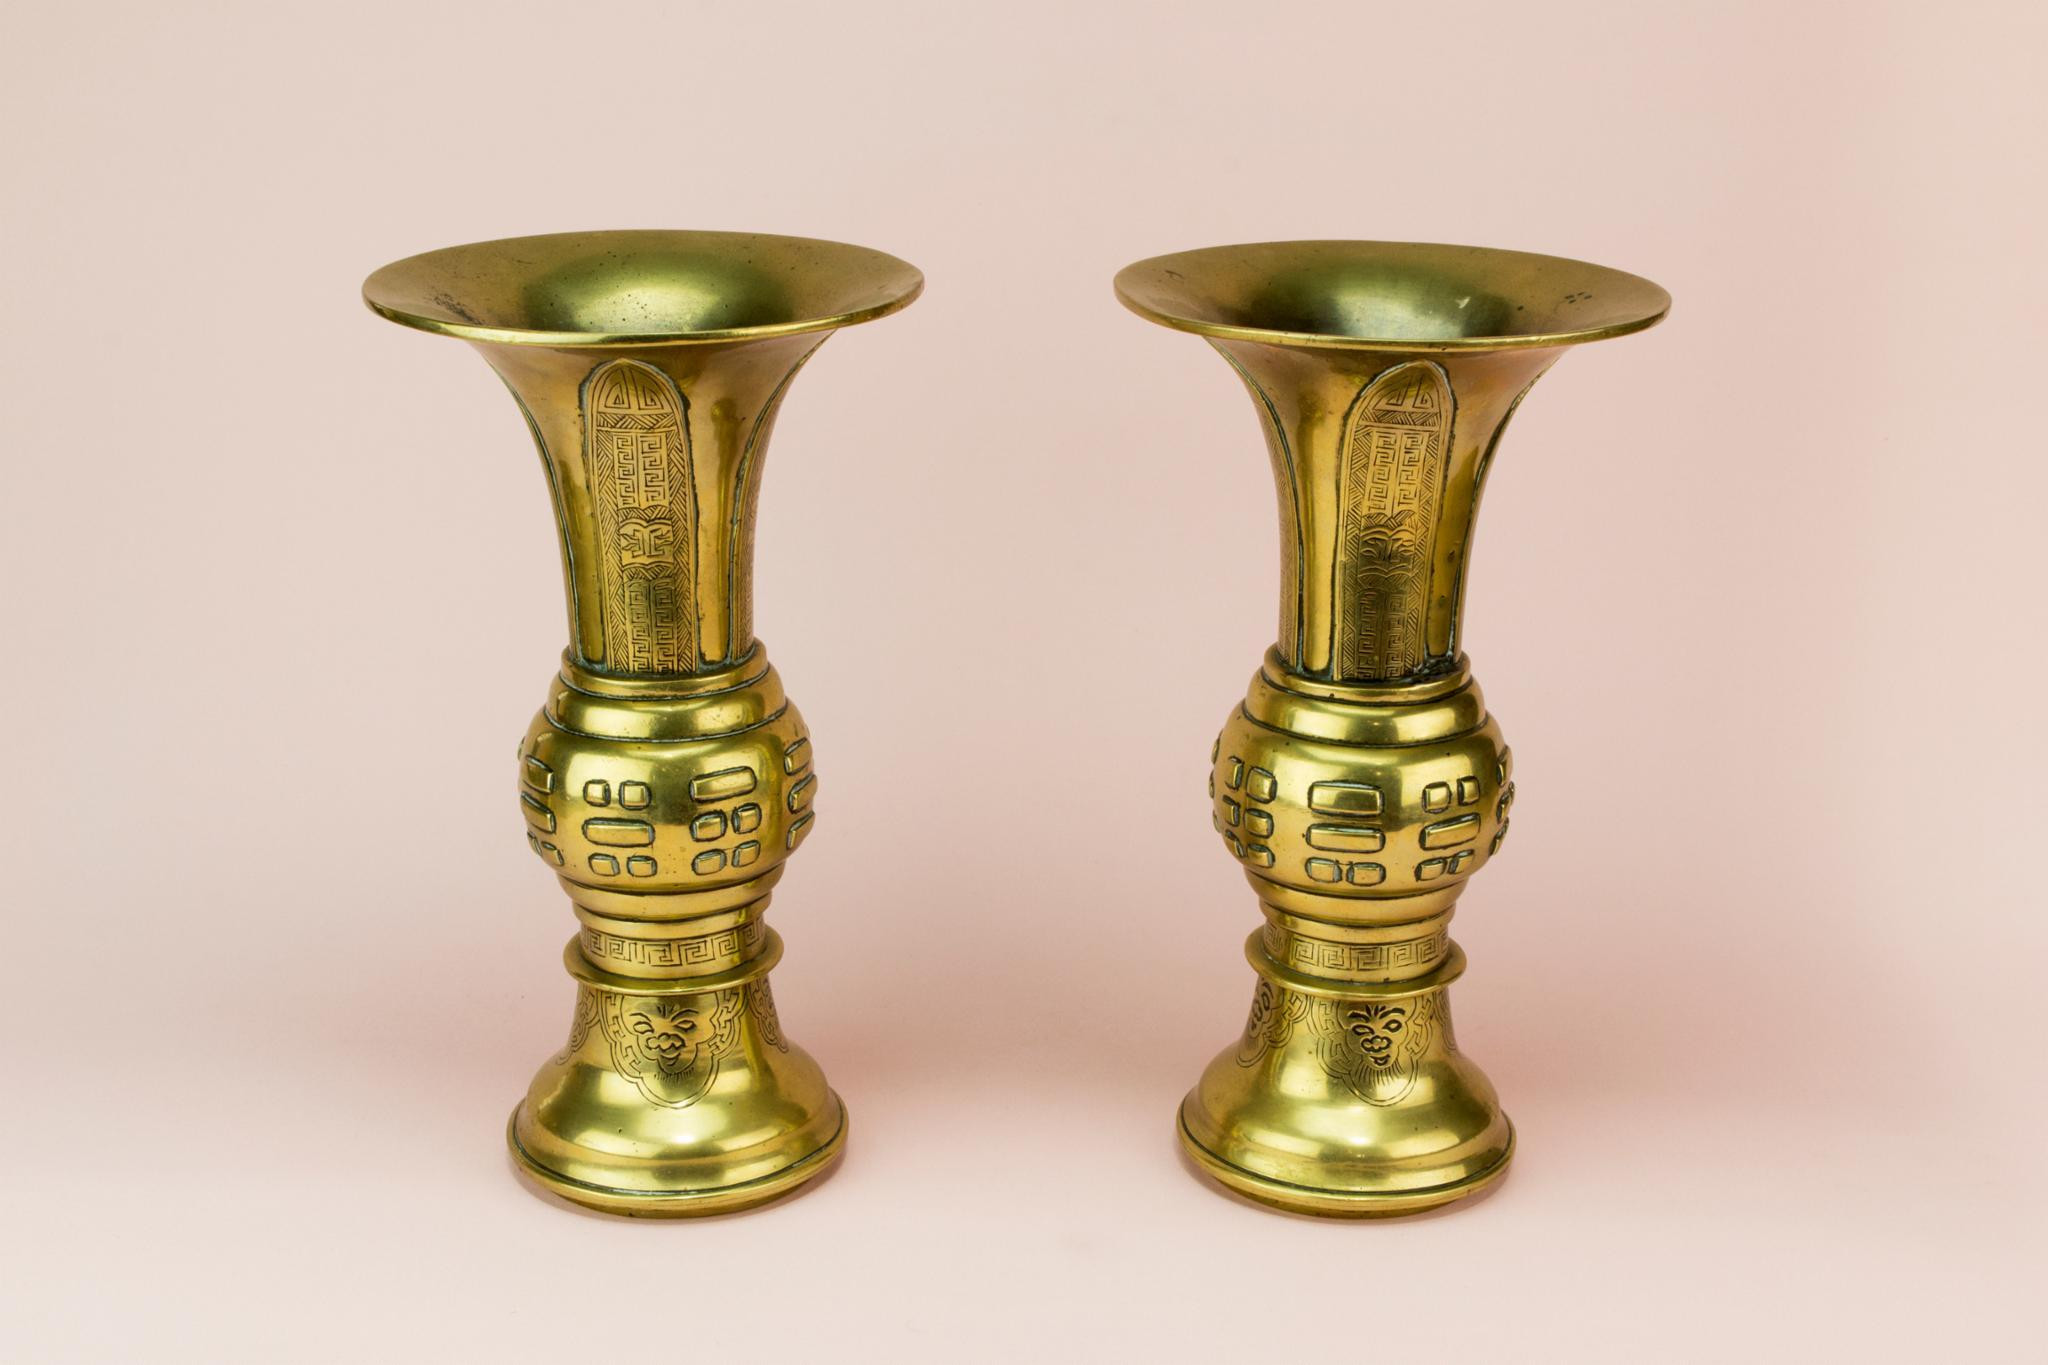 antique german porcelain vases of 2 gu shaped brass vases chinese 19th century late 19th century for 2 gu shaped brass vases chinese 19th century